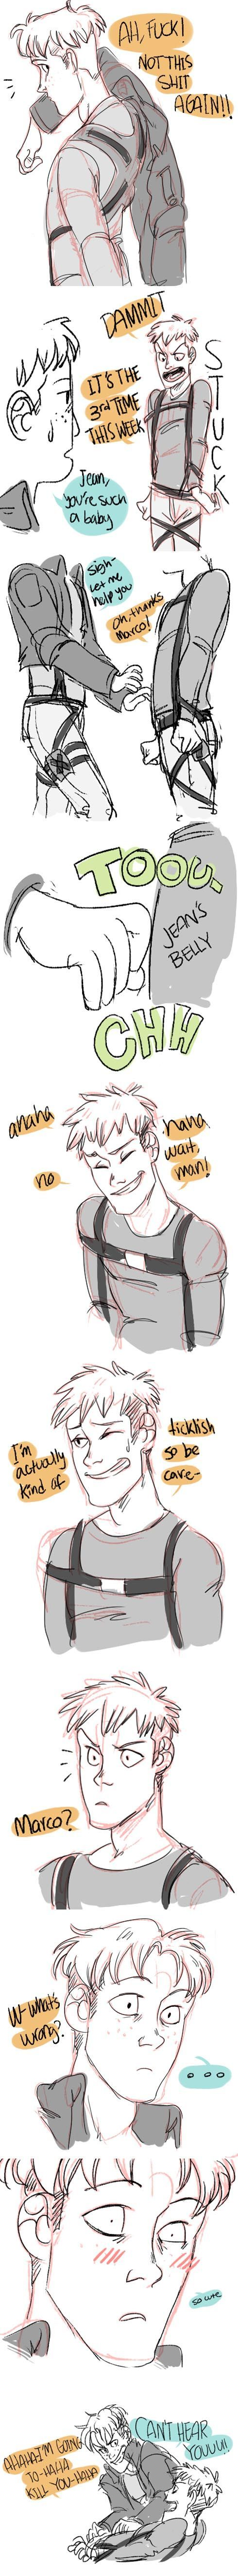 Attack on Titan ~~ When you get yourself all tied up, well.... :: Jean and Marco: